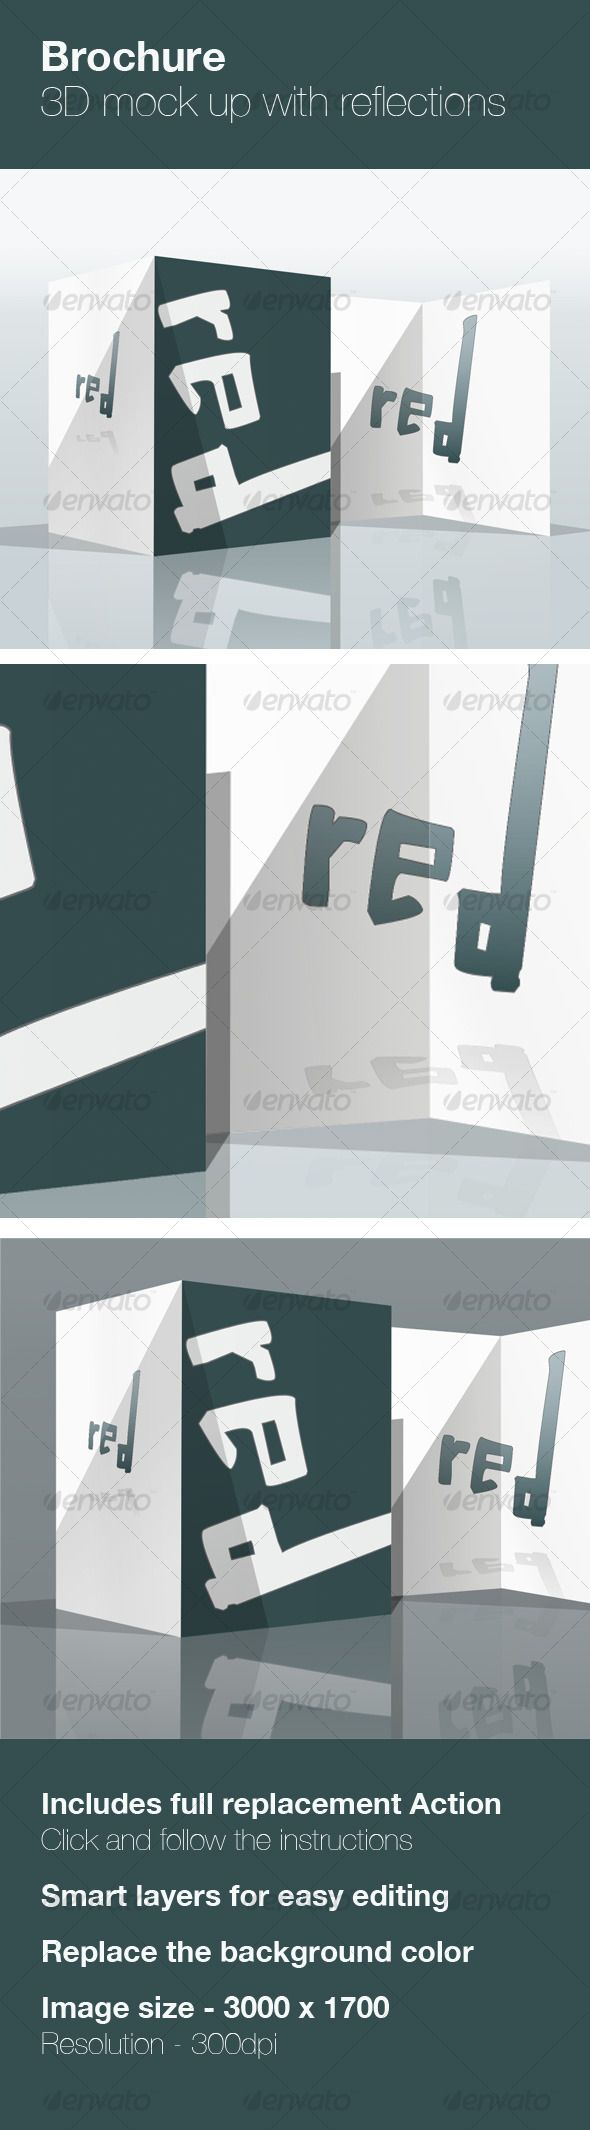 3d brochure mock up brochures print